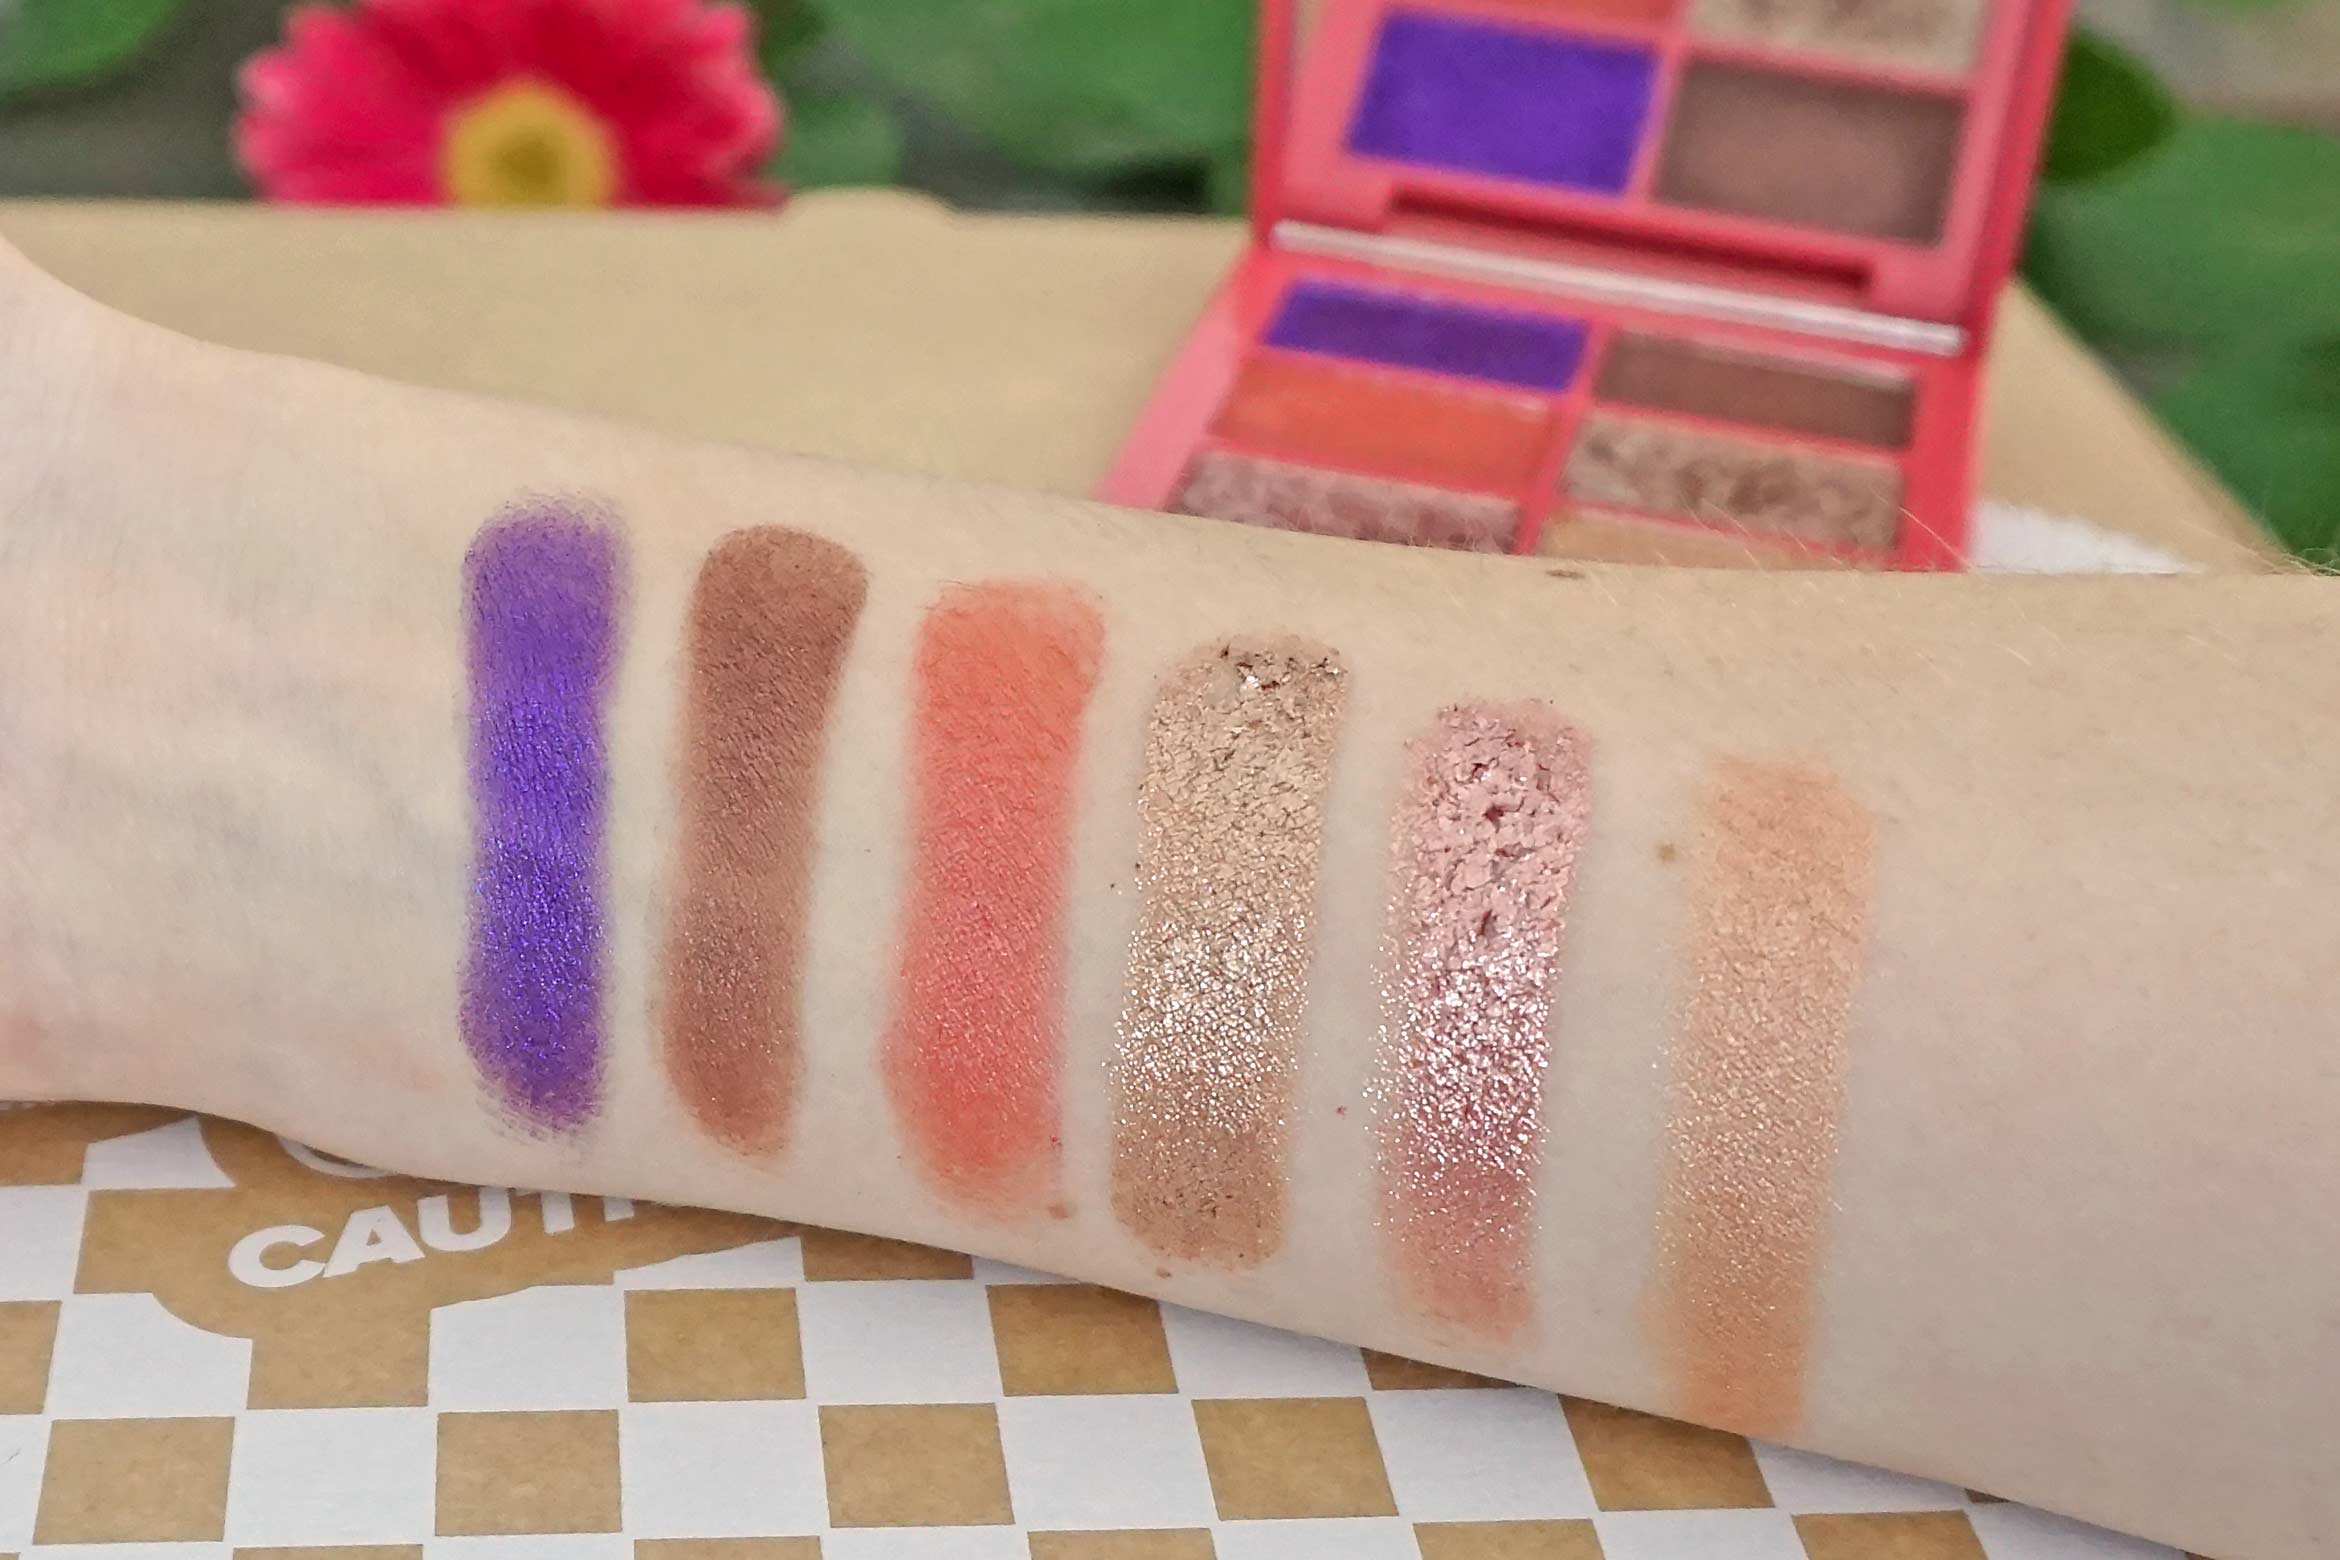 lottie london x laila loves eyeshadow palette swatches fantasy review